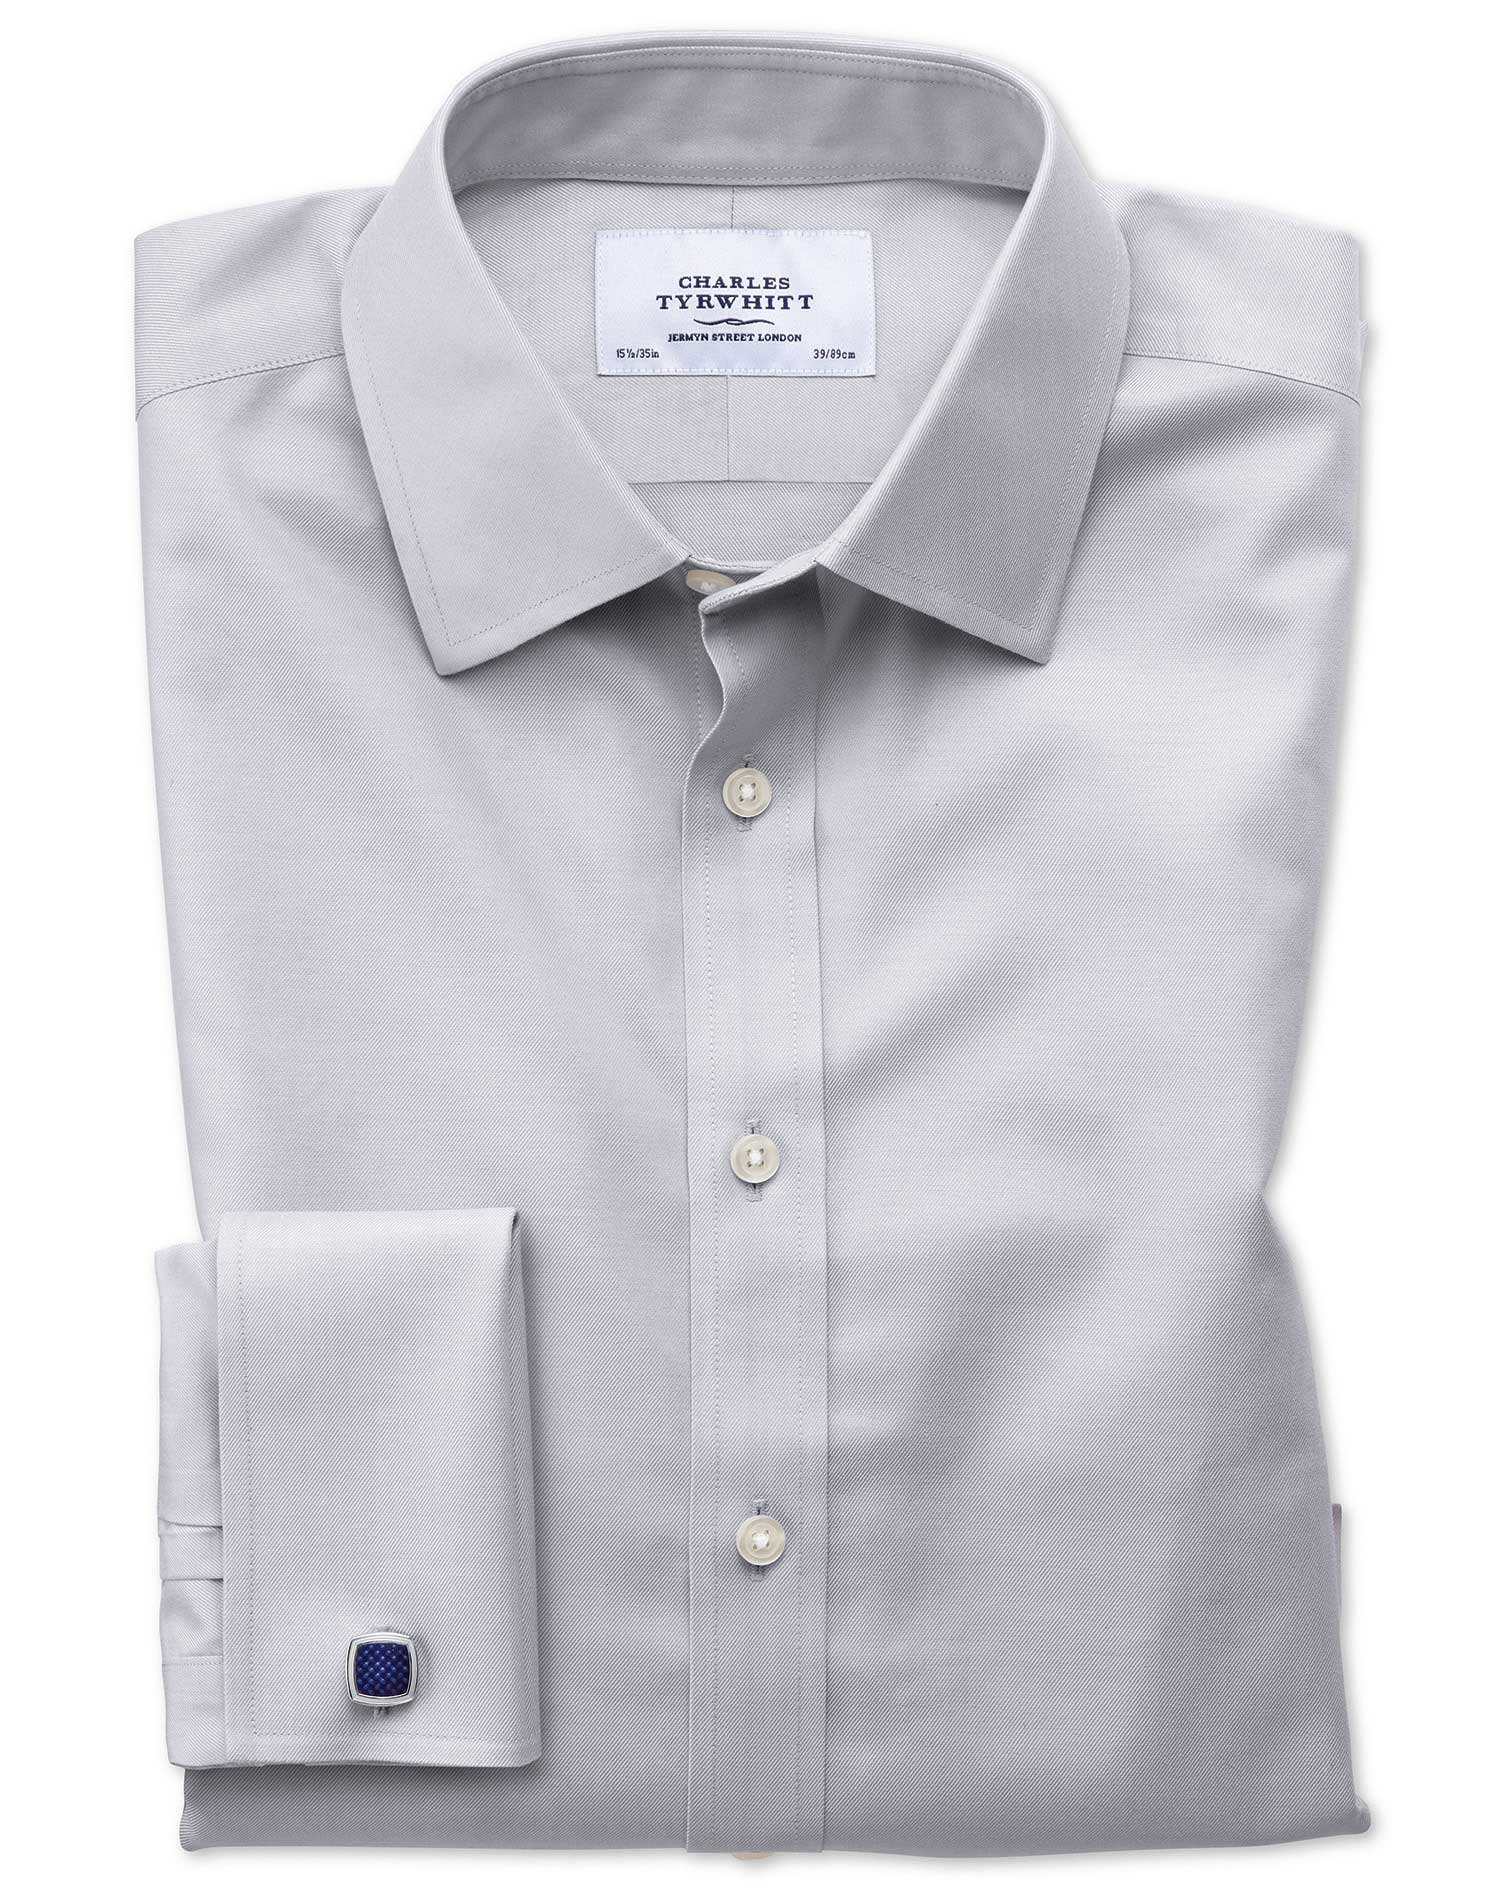 Classic Fit Non-Iron Twill Grey Cotton Formal Shirt Single Cuff Size 15.5/37 by Charles Tyrwhitt